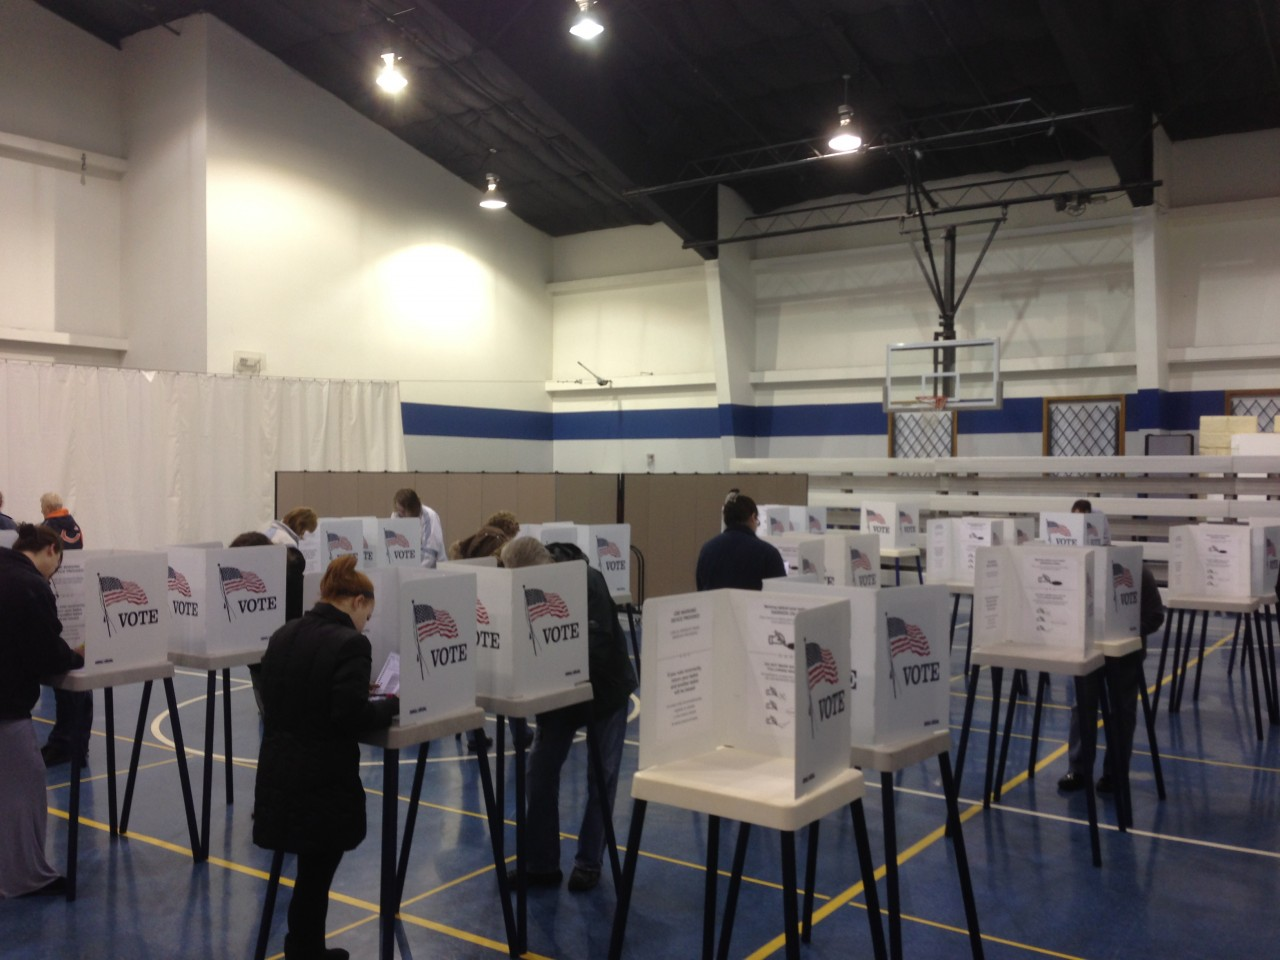 Rows of voting booths in a gym on election day